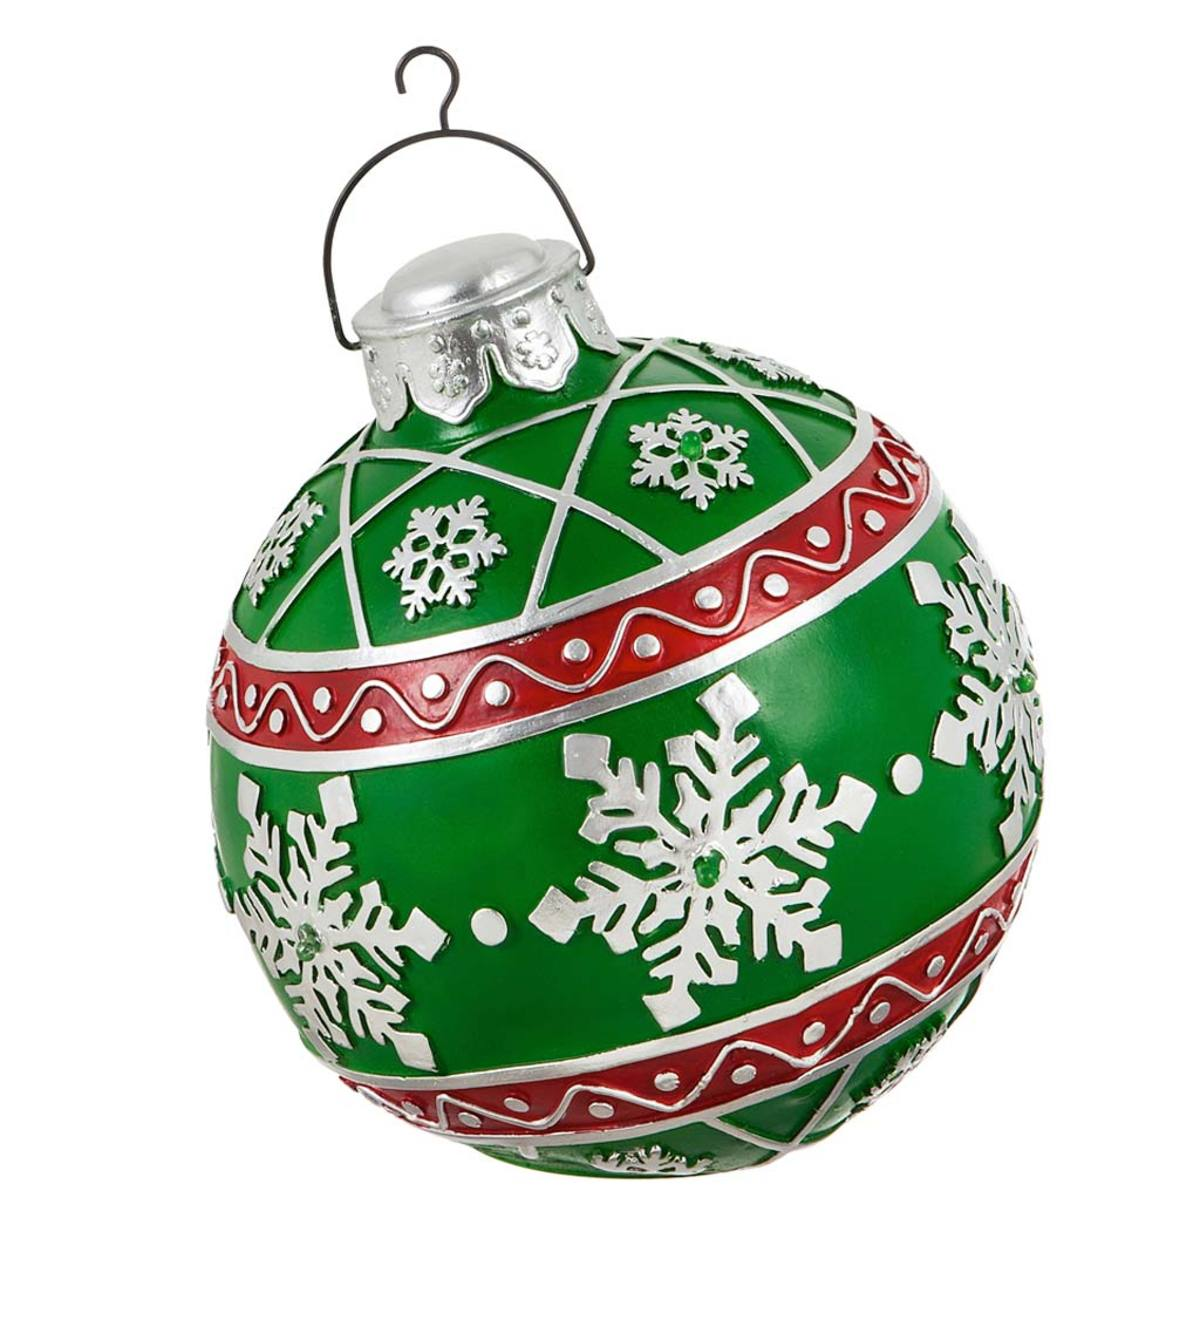 Lighted Indoor/Outdoor Decorative Ornament  - Green